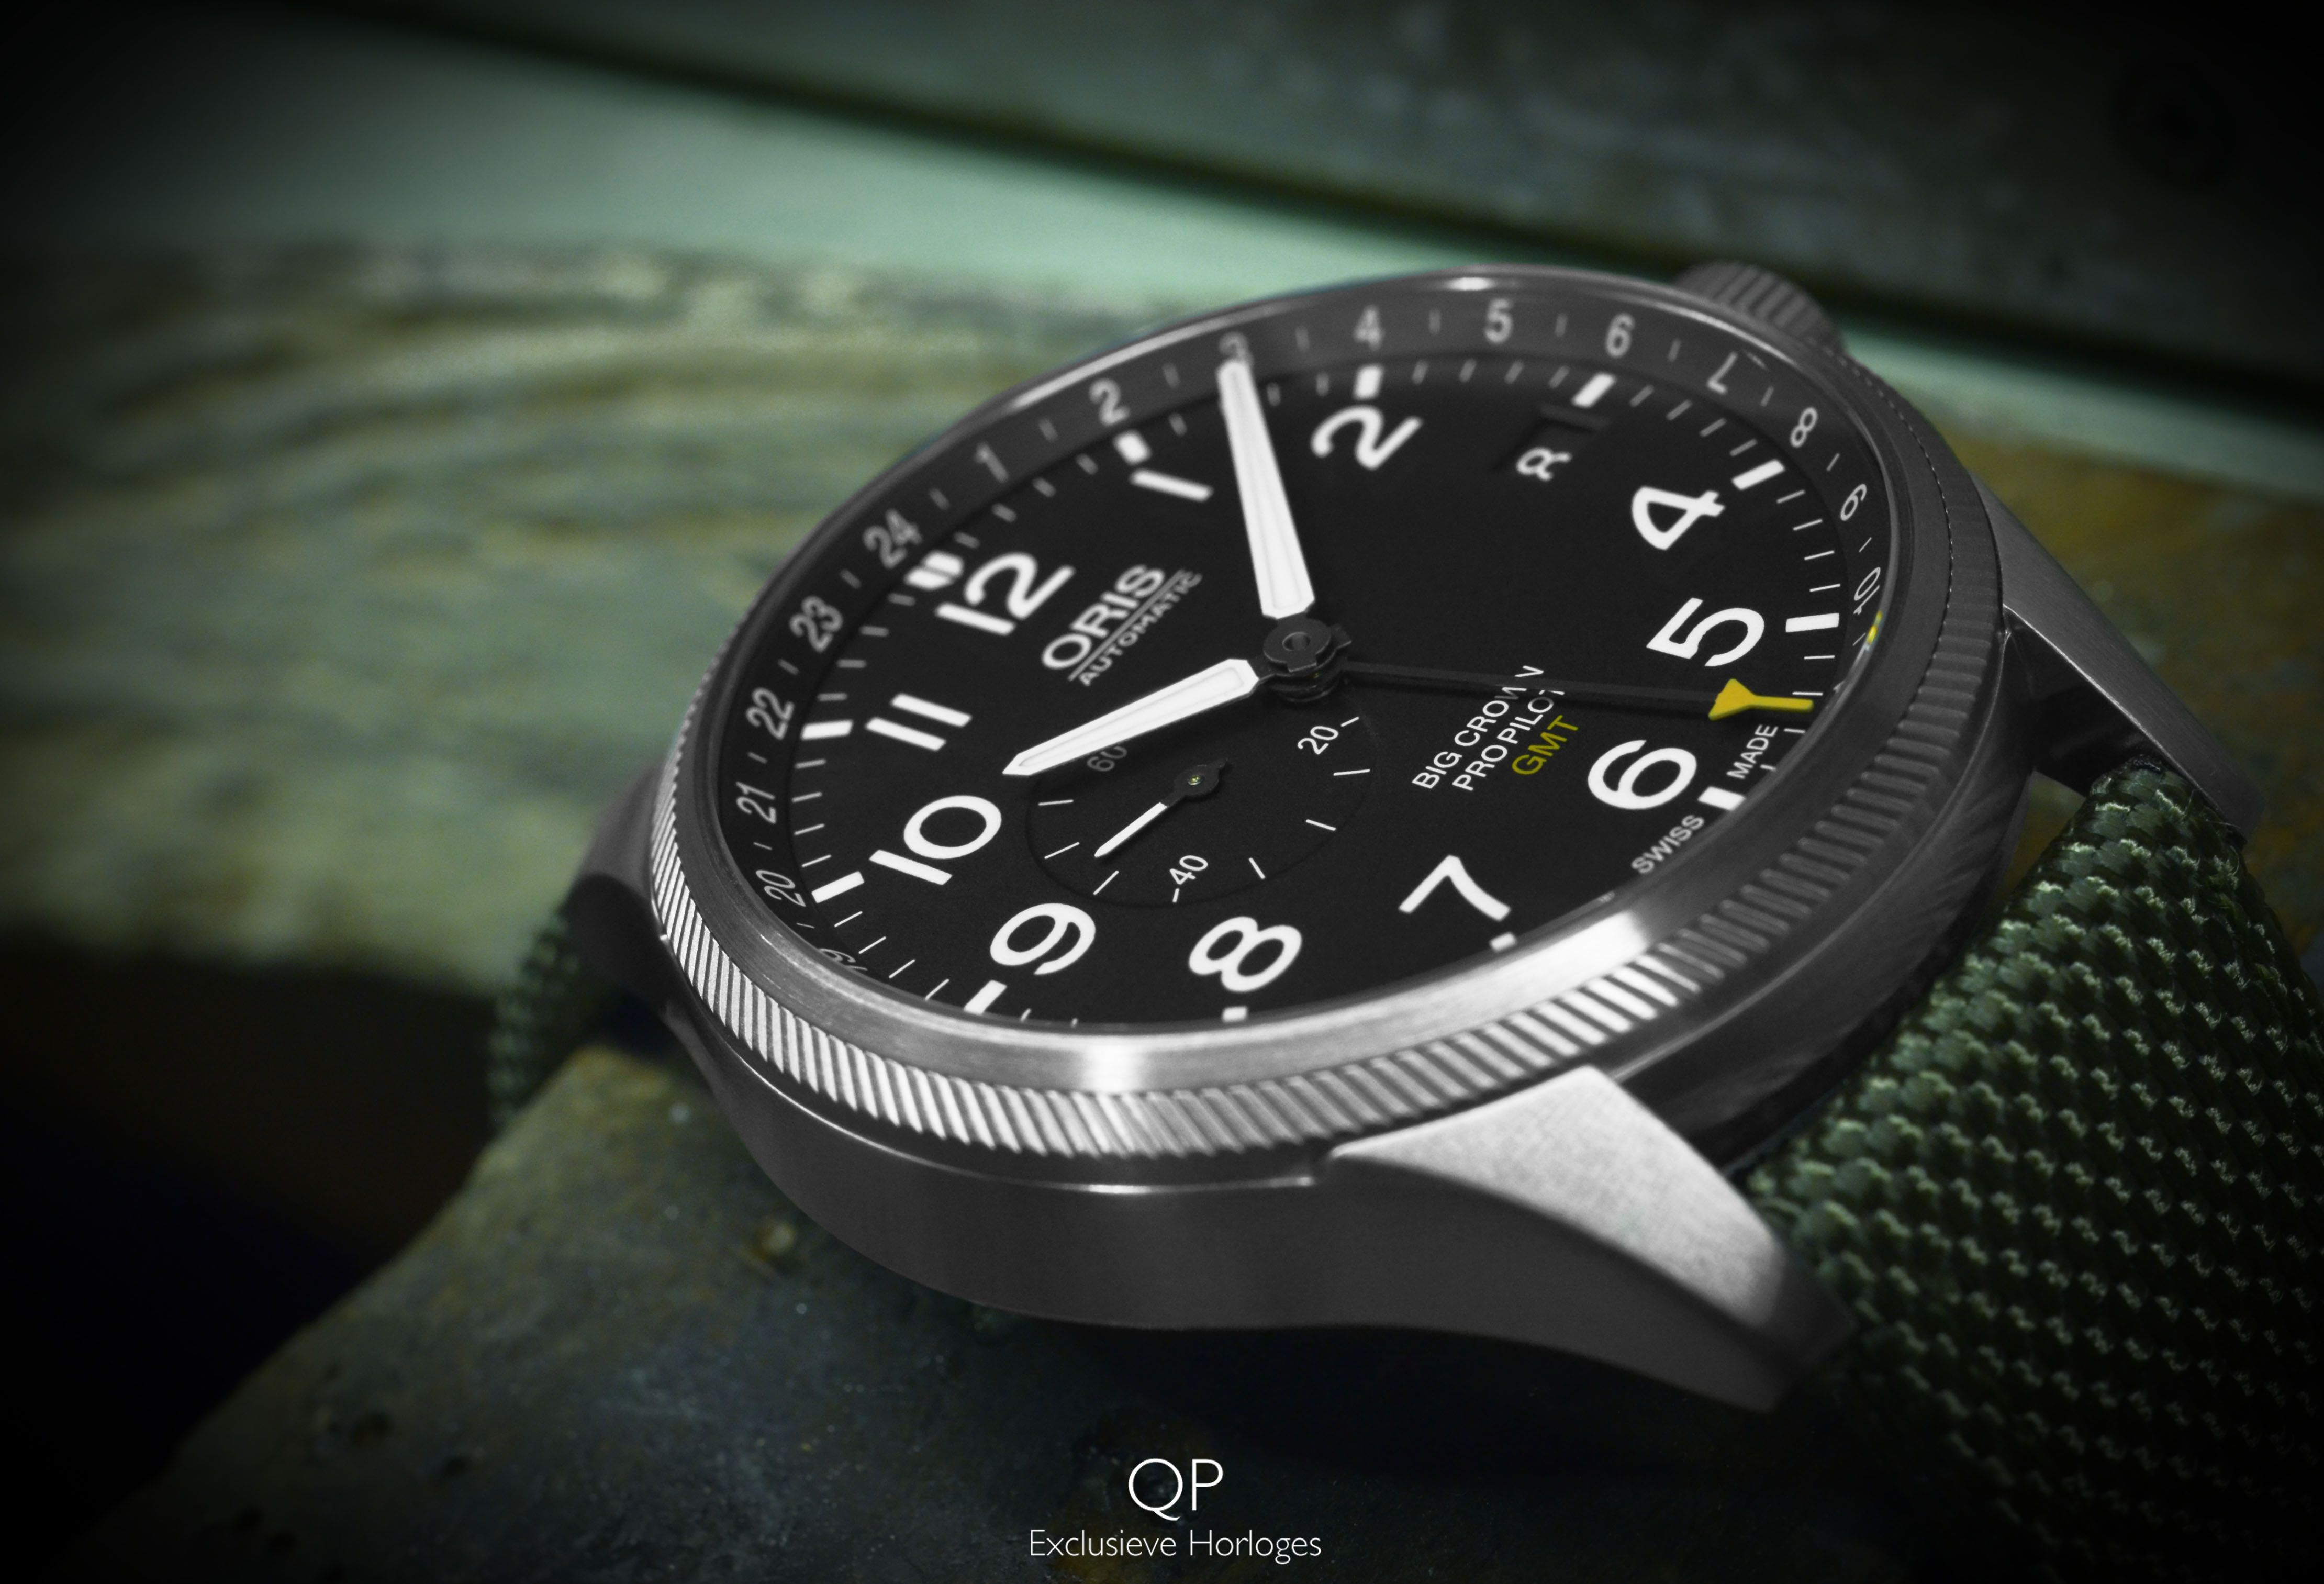 Here We Have The Characteristic Oris Big Crown Pro Pilot Gmt Small Second It Is Just One Of Several Products That S The Result Of Oris Long Sta メンズ 時計 時計 メンズ